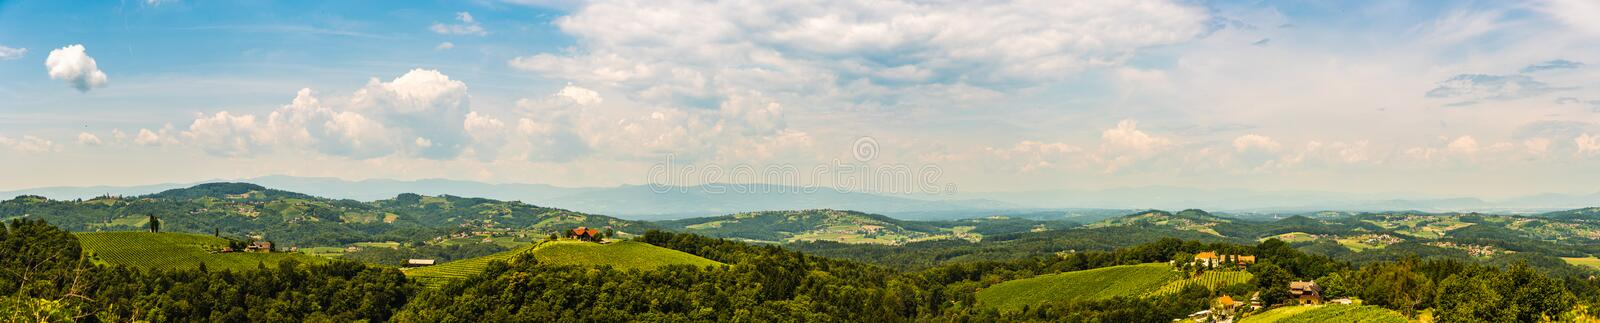 Panorama of Vineyards in south styria in Austria. Landscape of Leibnitz area from Kogelberg. Tourist destination, Green hills of grape crops and mountains royalty free stock image